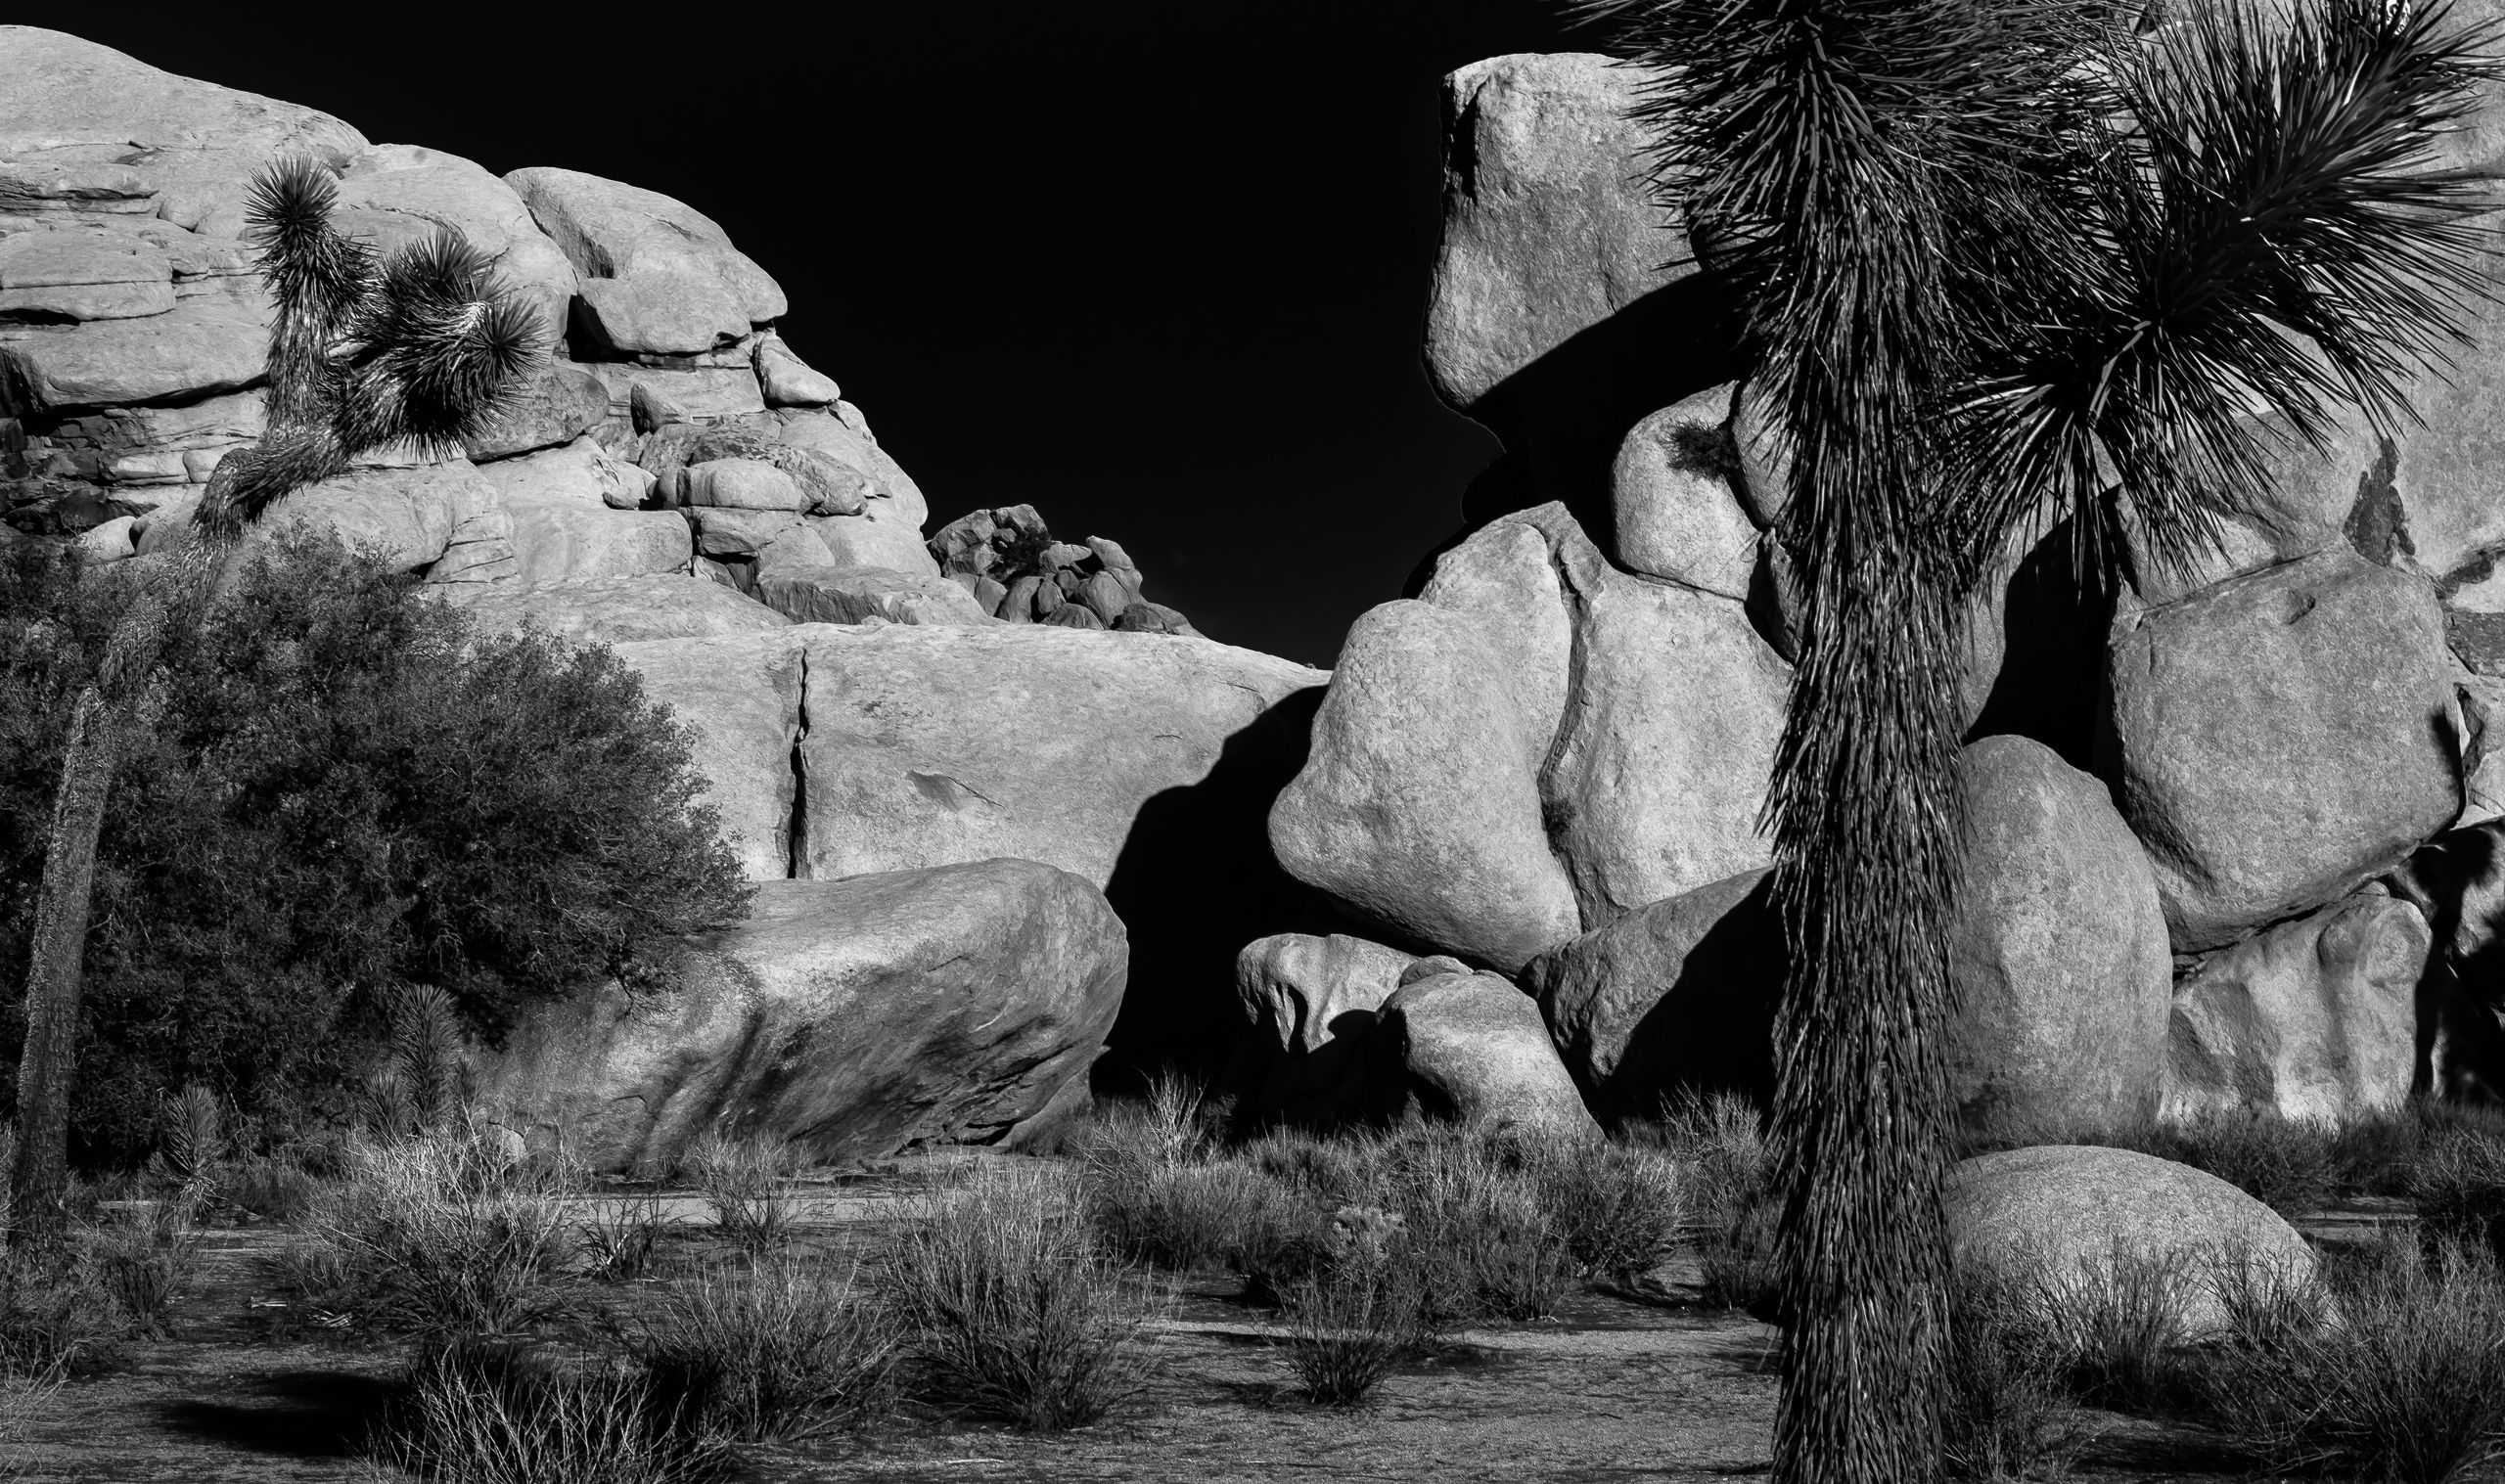 MT NIXON (TRICKY DICK HILL)  WONDERLAND OF ROCKS, JOSHUA TREE NATIONAL PARK, CALIFORNIA